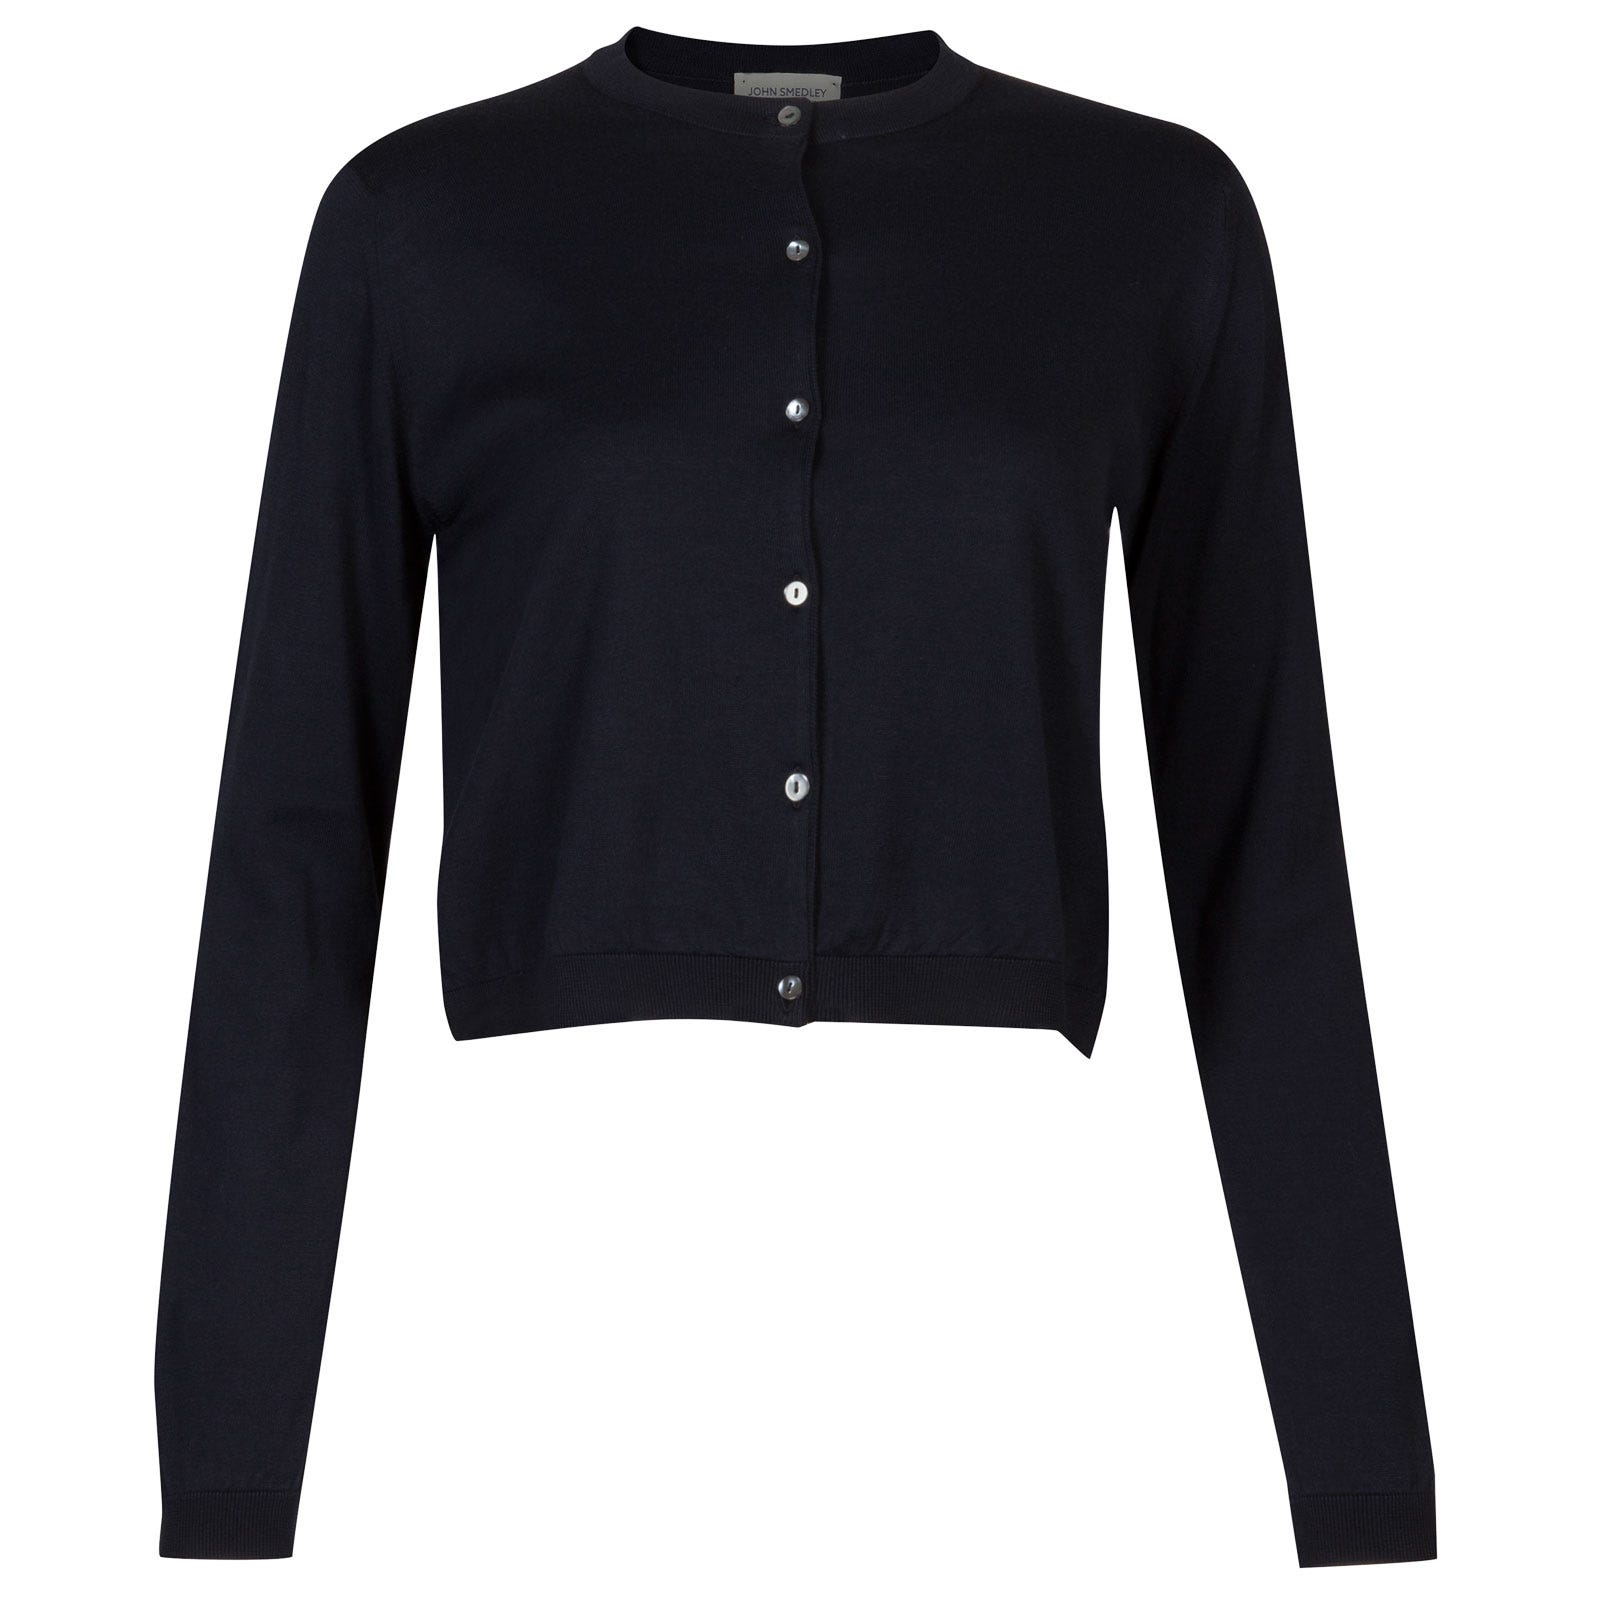 John Smedley Bowes Sea Island Cotton Cardigan in Navy-XL